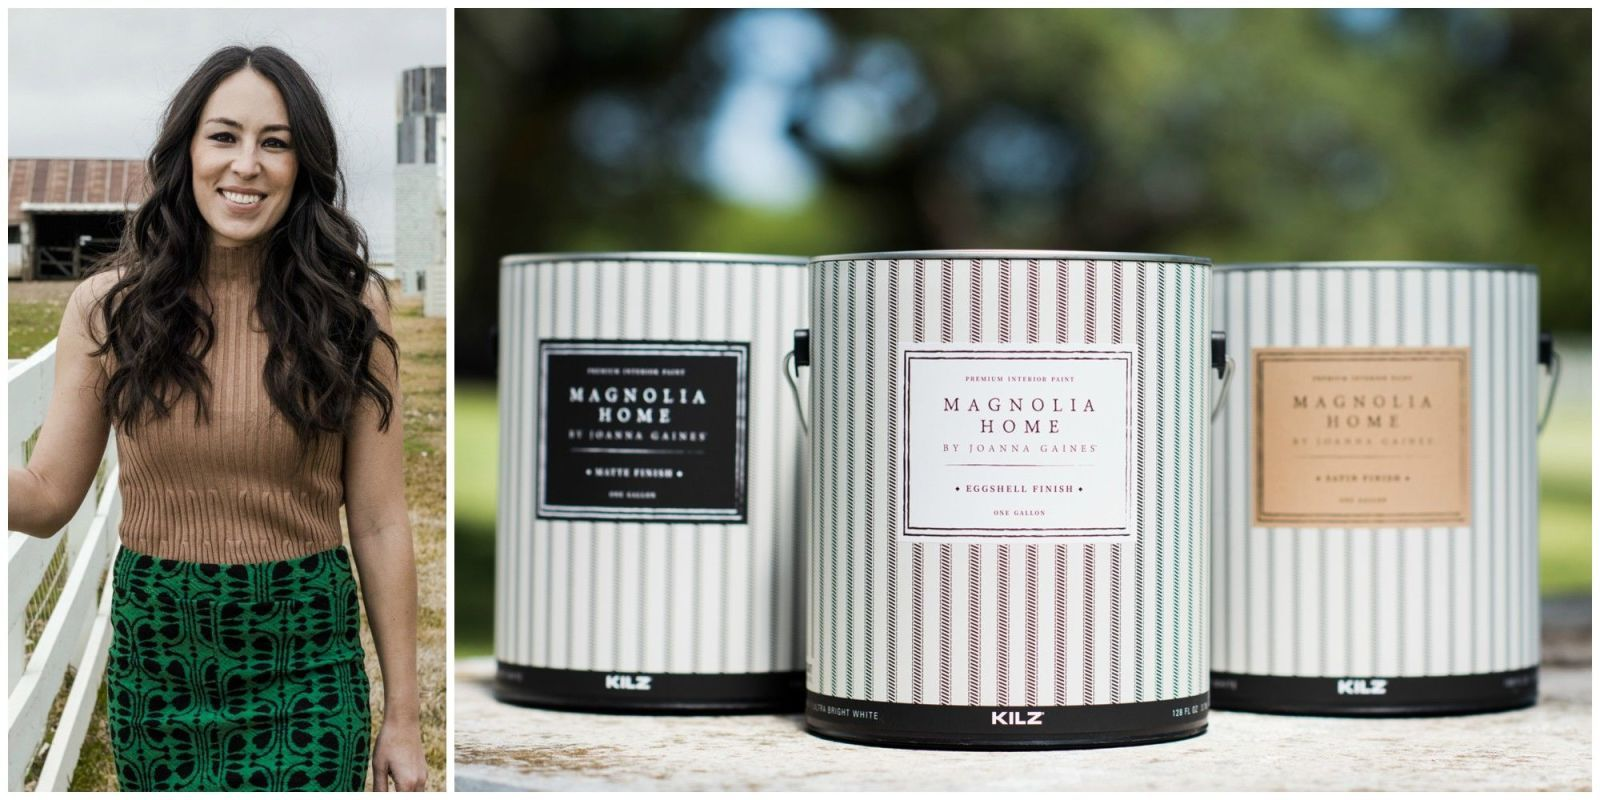 You Can Now Buy Joanna Gaines Paint Line At Westlake Ace Hardware Stores  Where to Buy Joanna